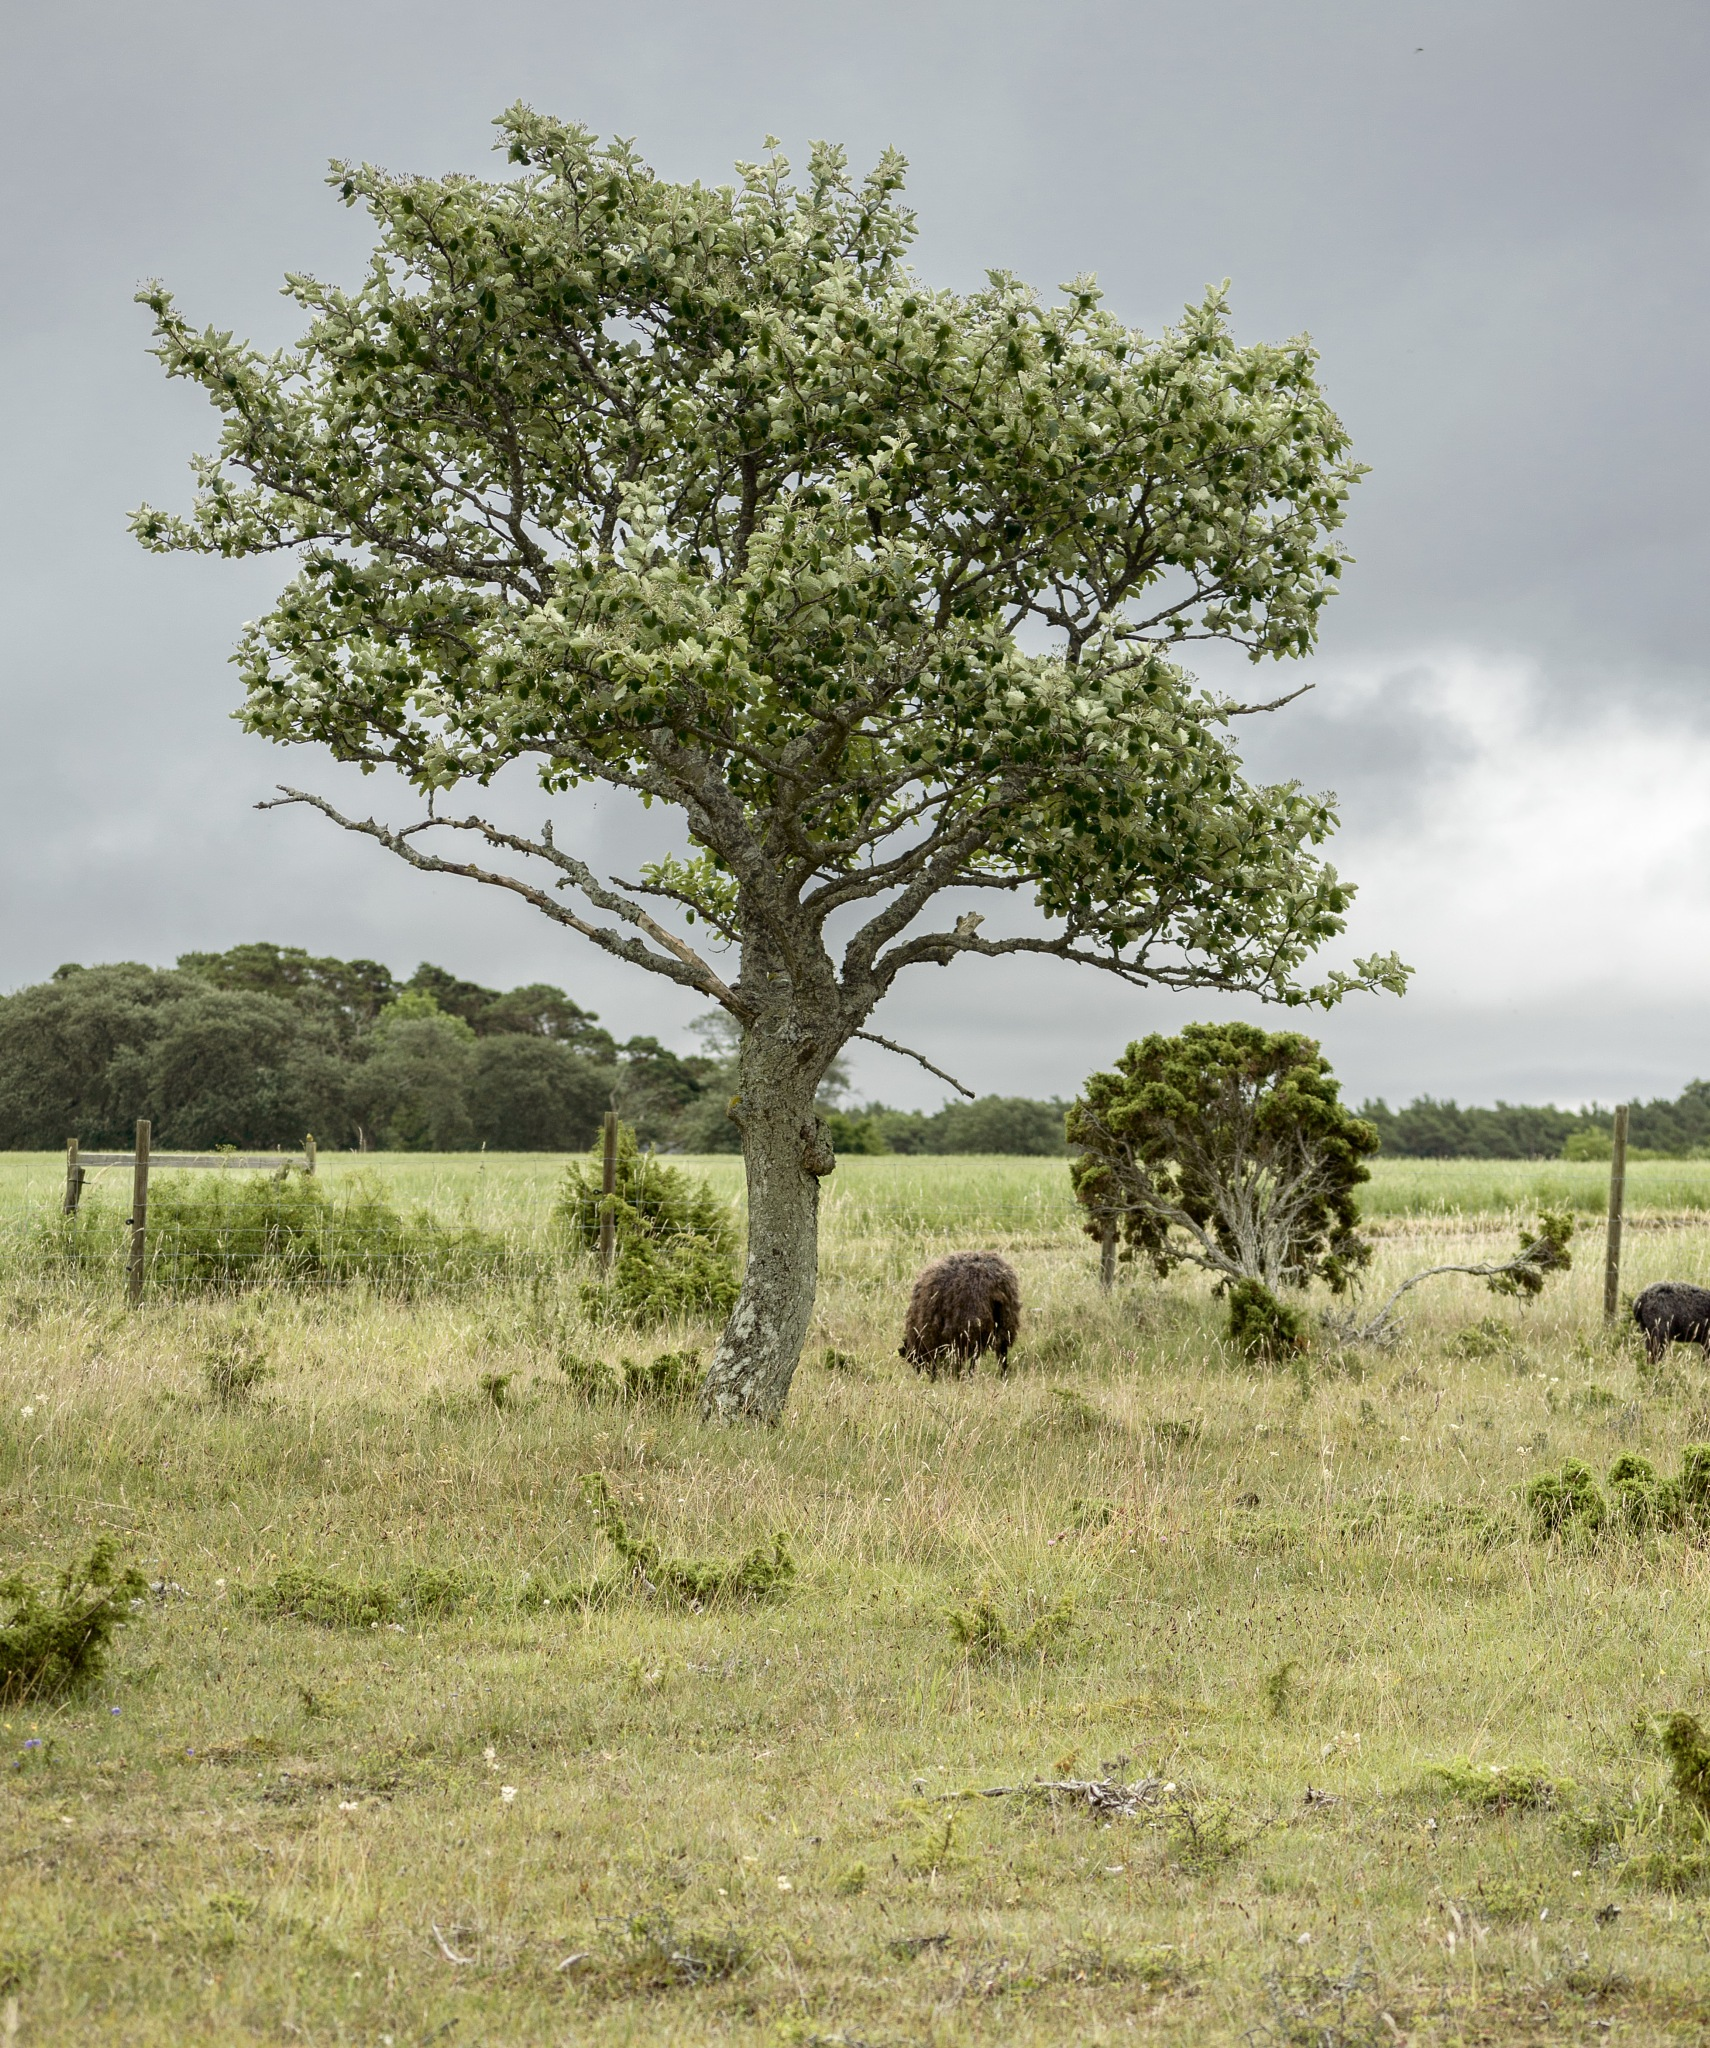 Tree and sheep by Micke Seise